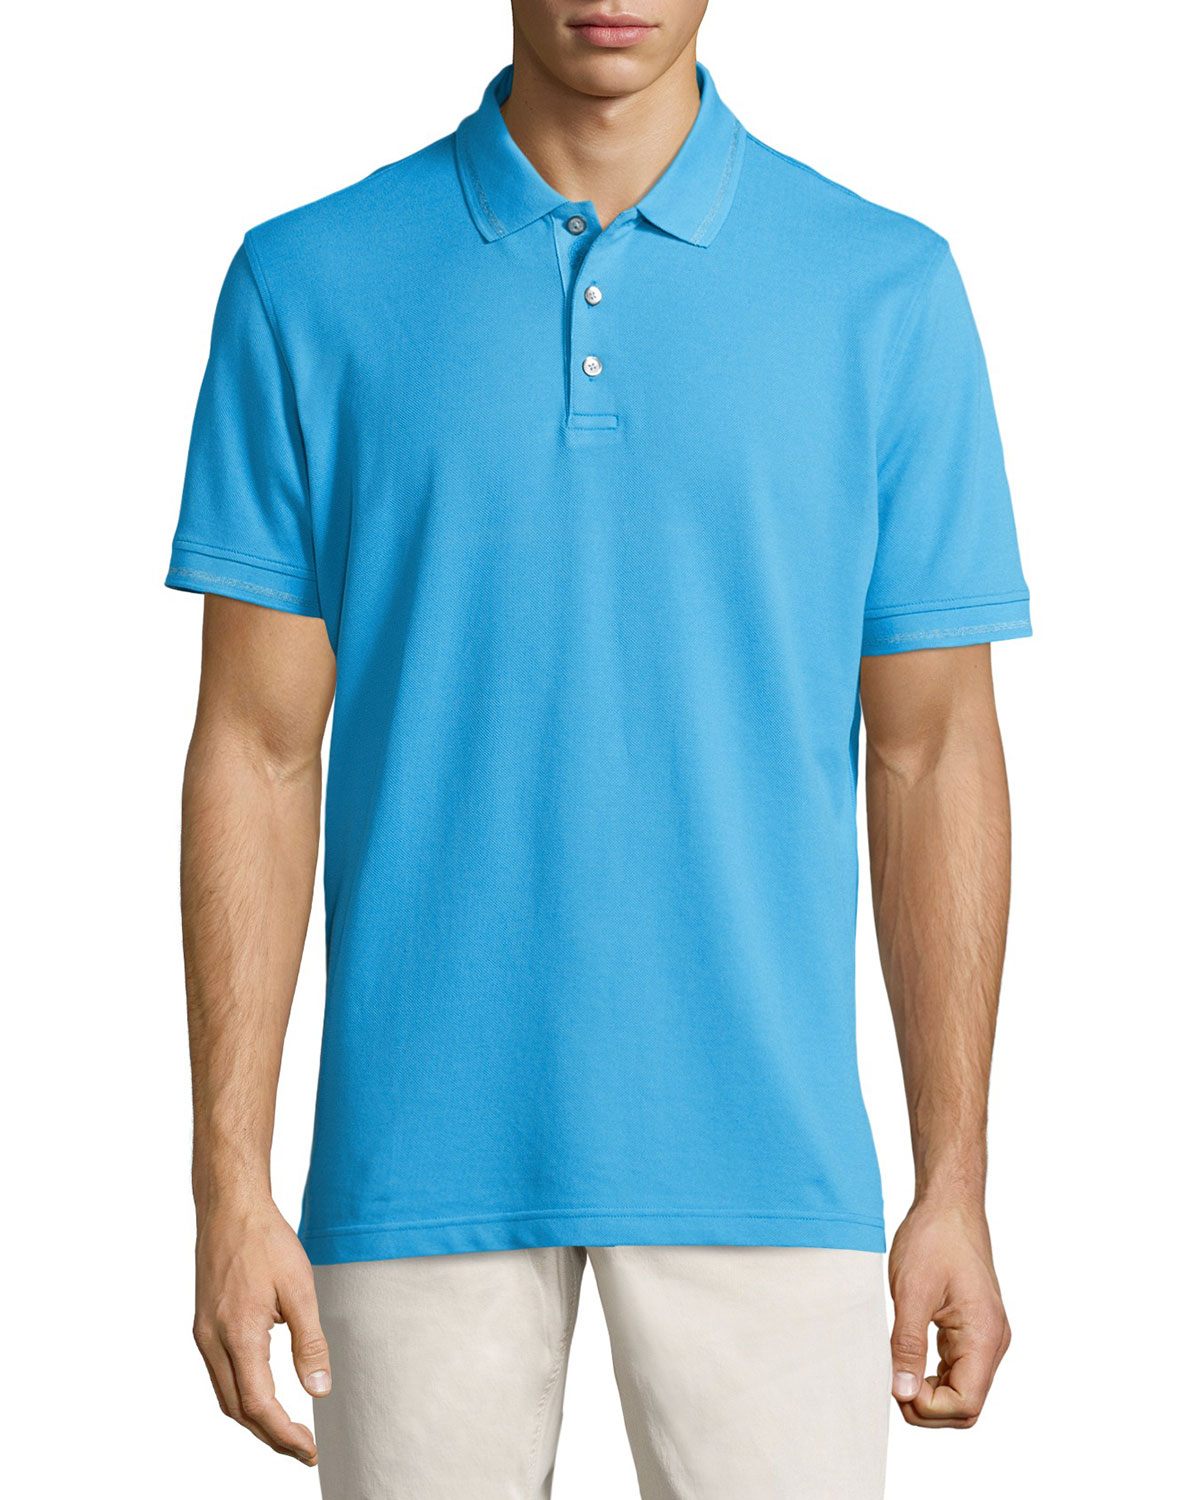 Robert graham numero knit 3 button polo shirt in blue for for 3 button polo shirts